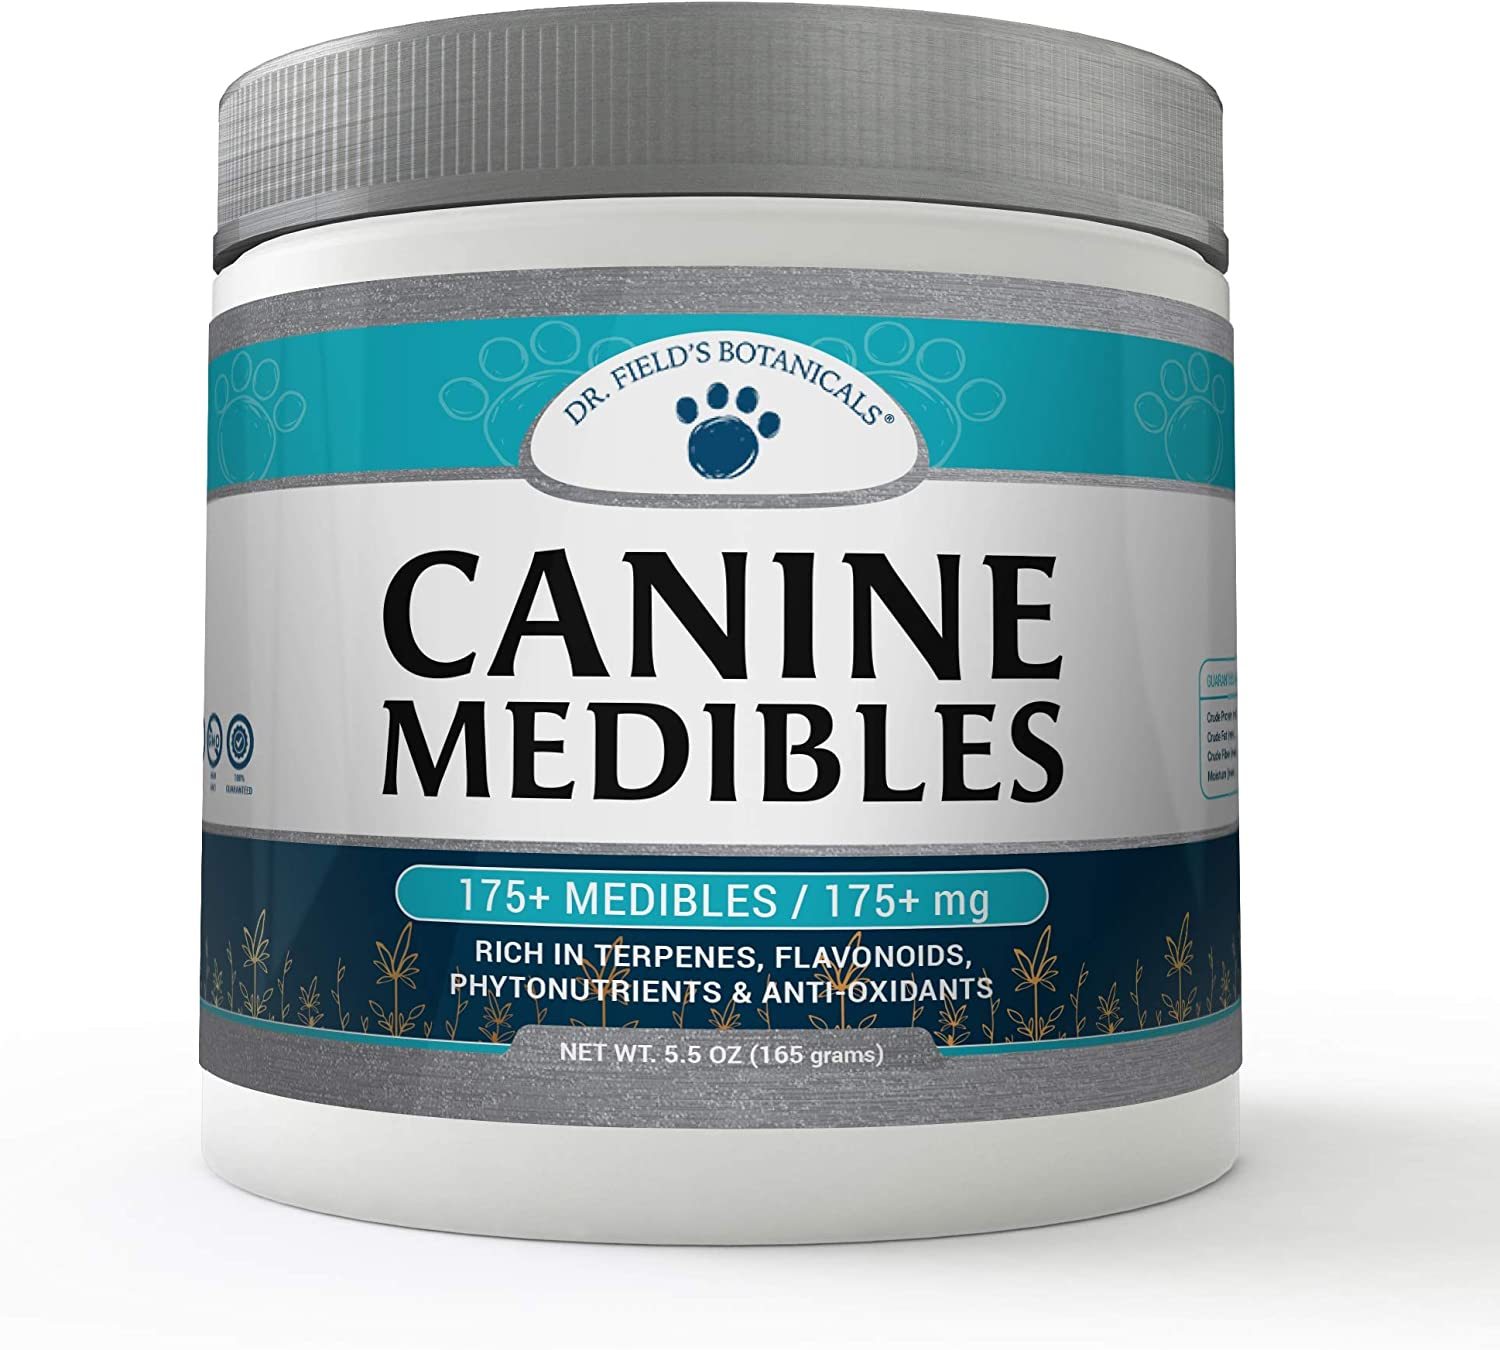 Dr. Field's Gifts Special price for a limited time Botanicals Canine Medibles Dog Perfec Chews Hemp